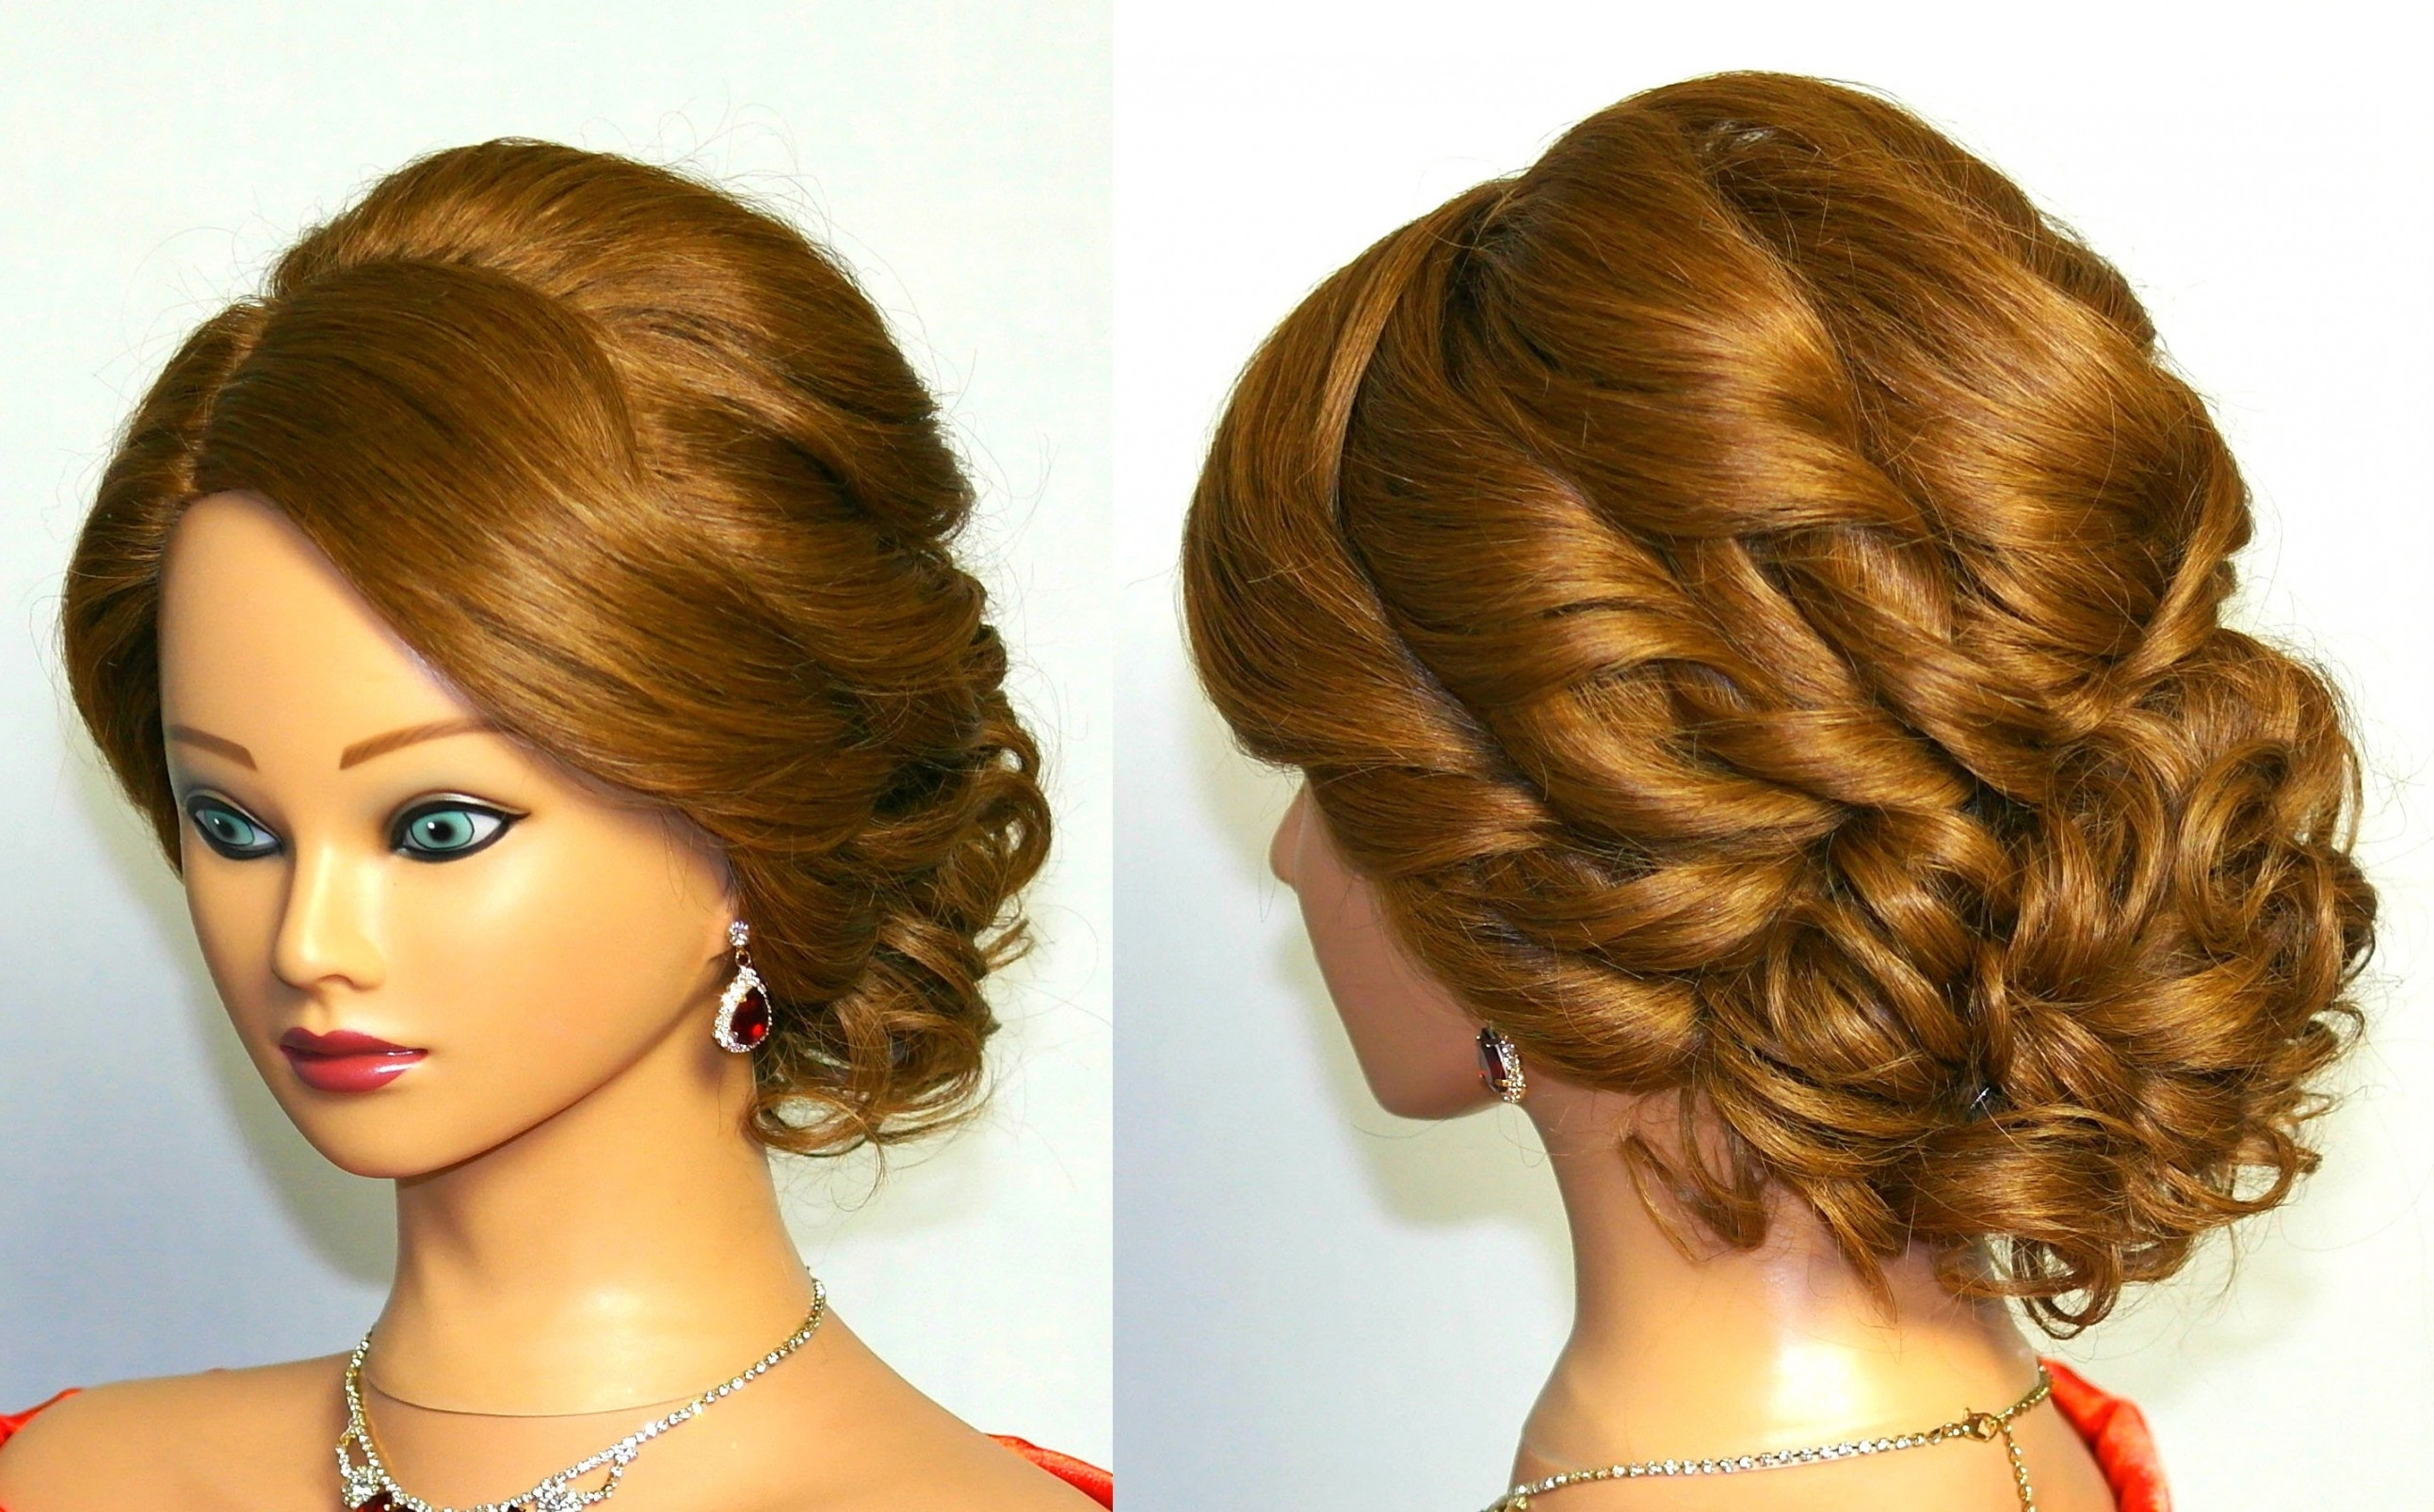 Hair Updo Hairstyles Bridal Curly Updo Hairstyle For Medium Hair With Wavy Hair Updo Hairstyles (View 2 of 15)